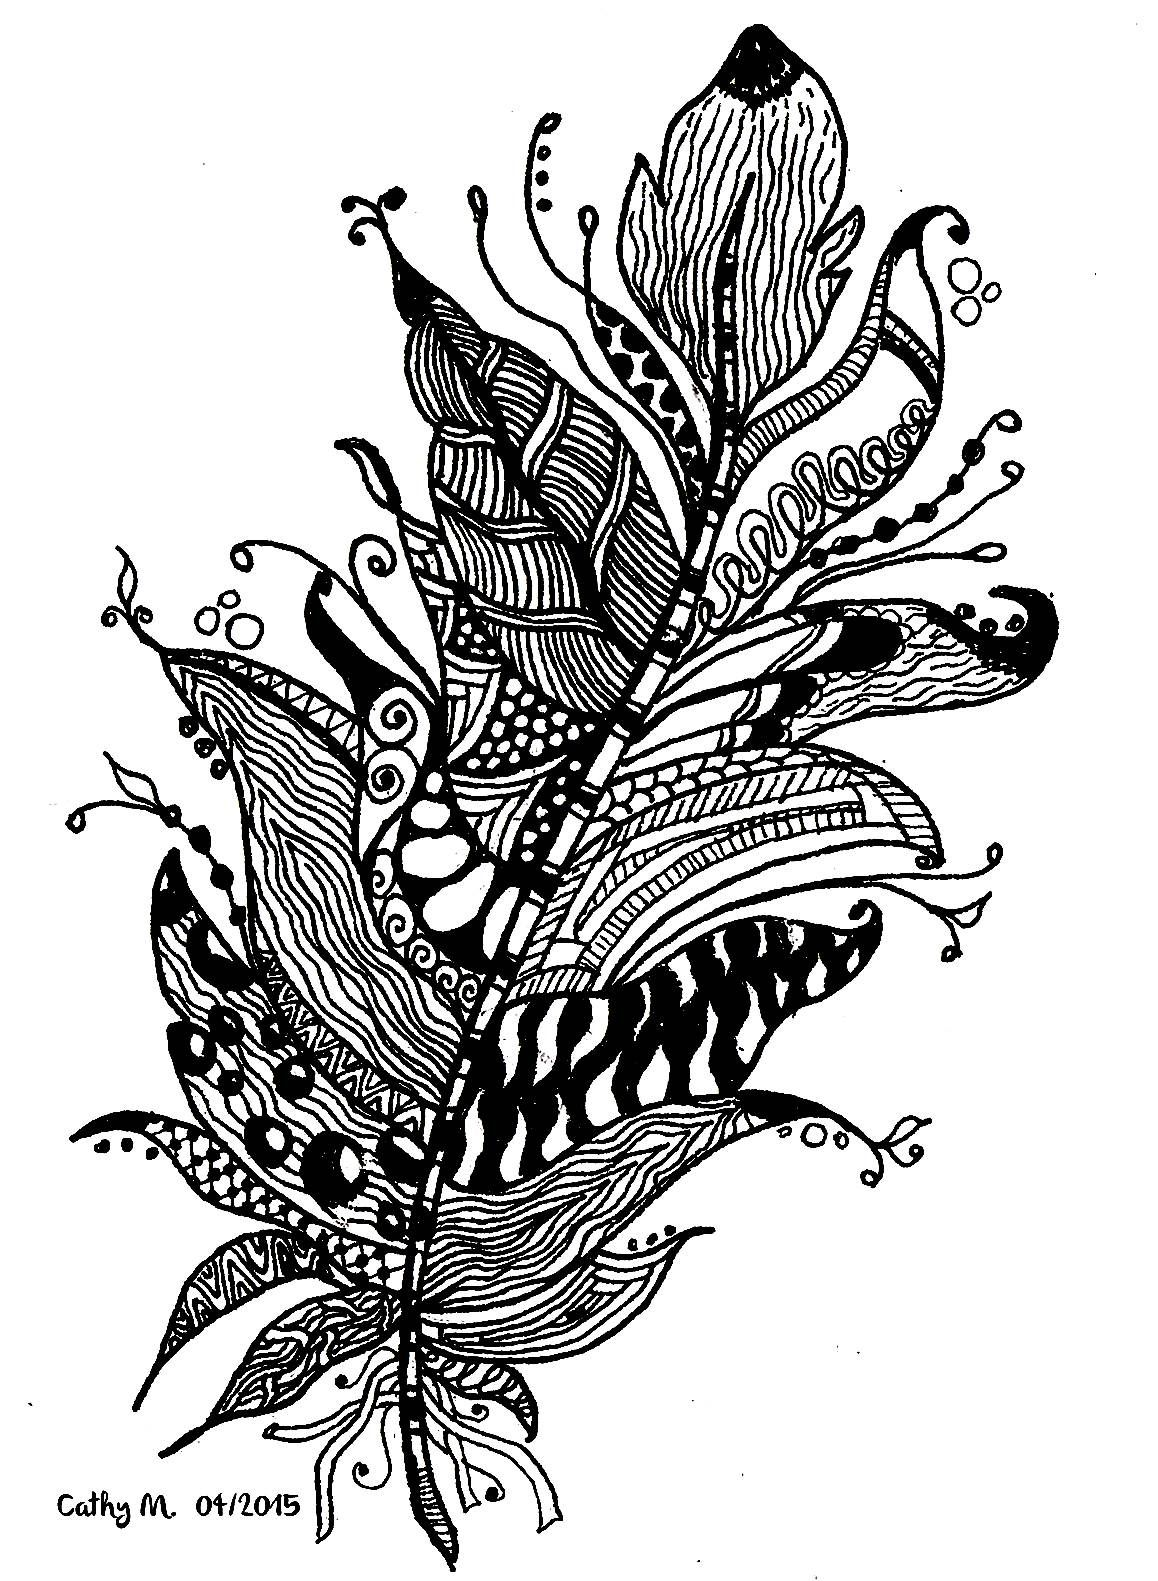 Free printable zentangle coloring pages for adults - Free Coloring Page Coloring Zentangle By Cathym 11 Fancy Feather